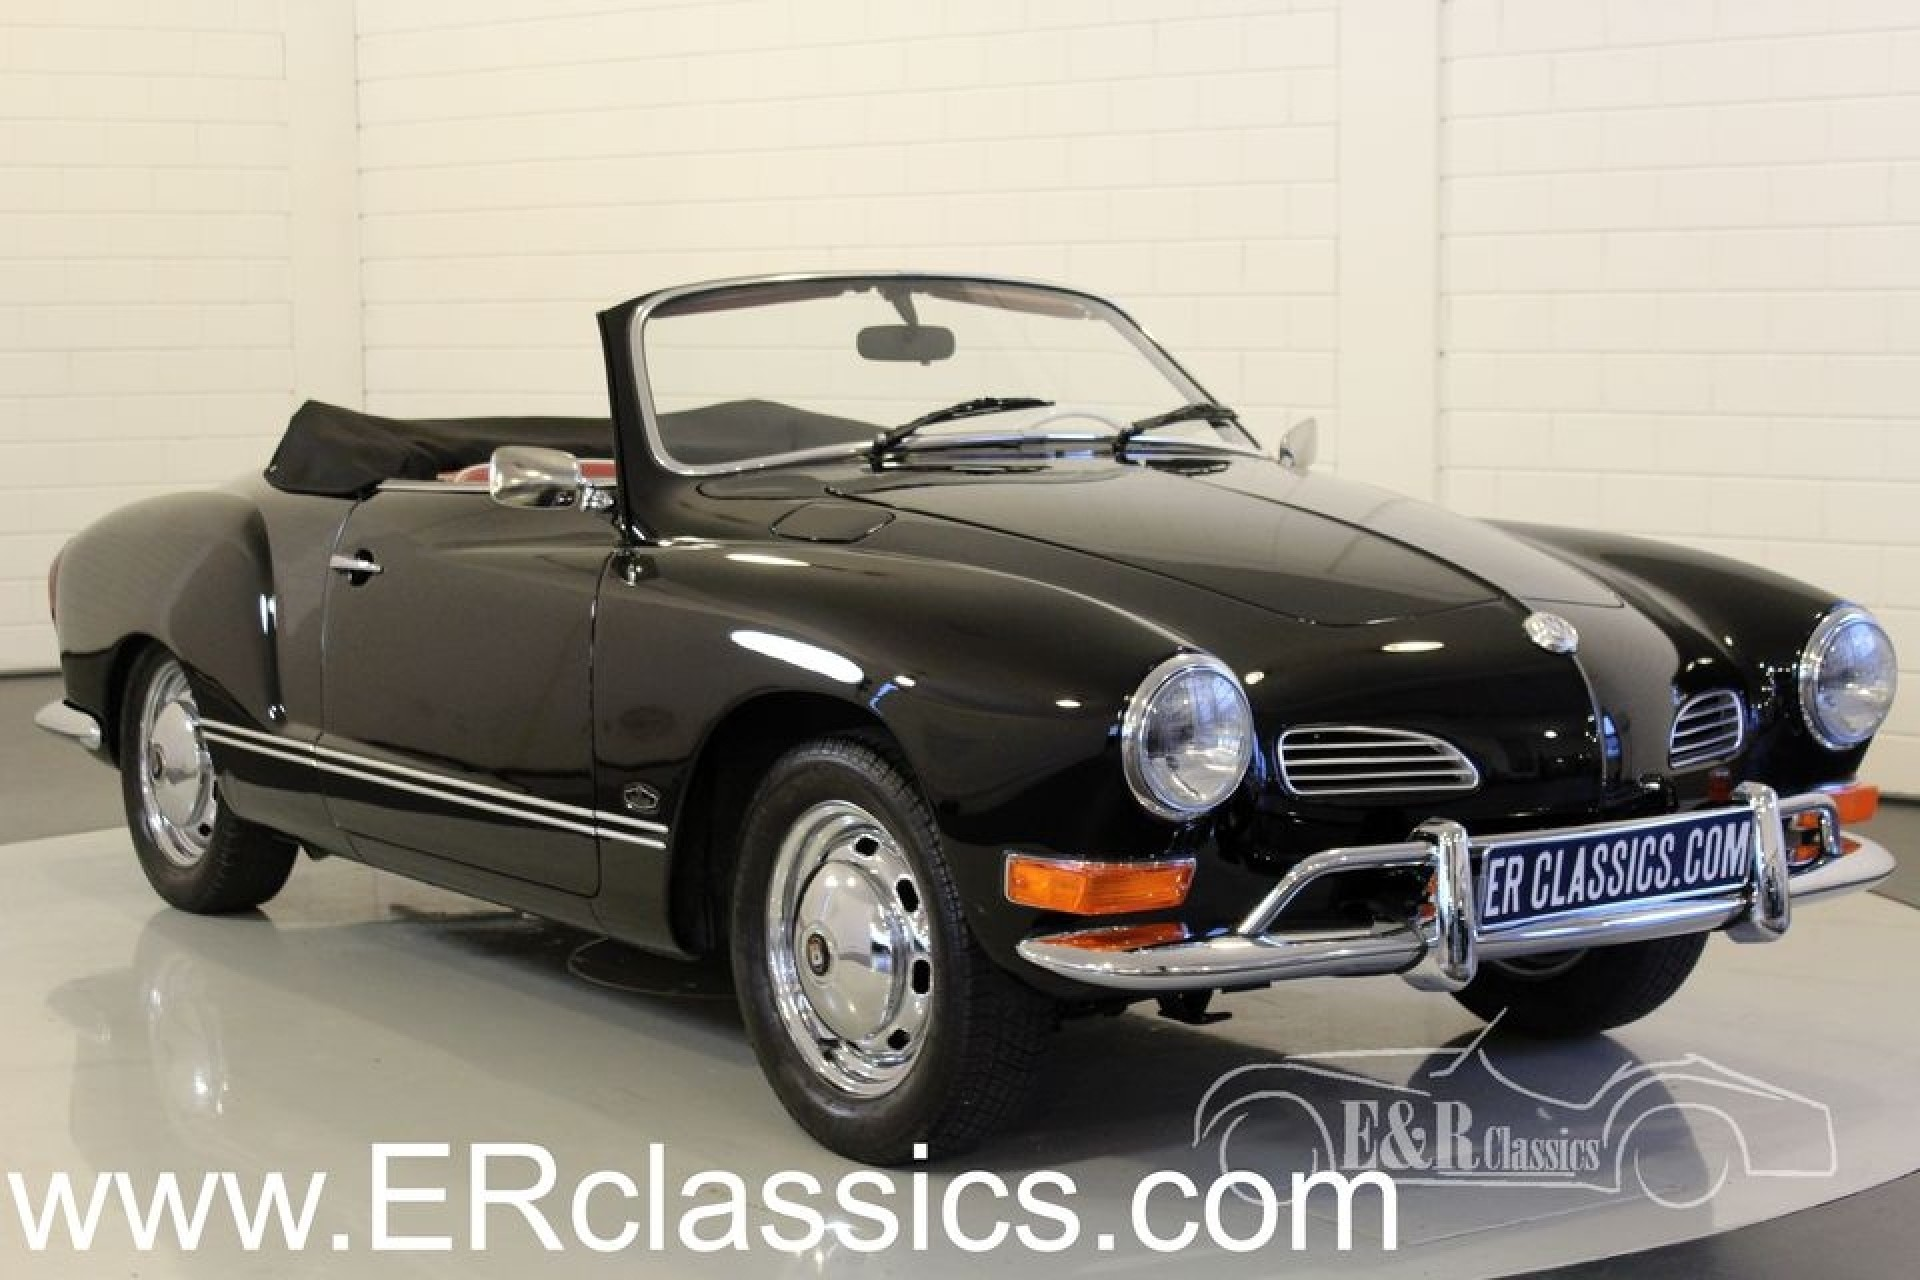 vw karmann ghia cabriolet 1971 for sale at erclassics. Black Bedroom Furniture Sets. Home Design Ideas